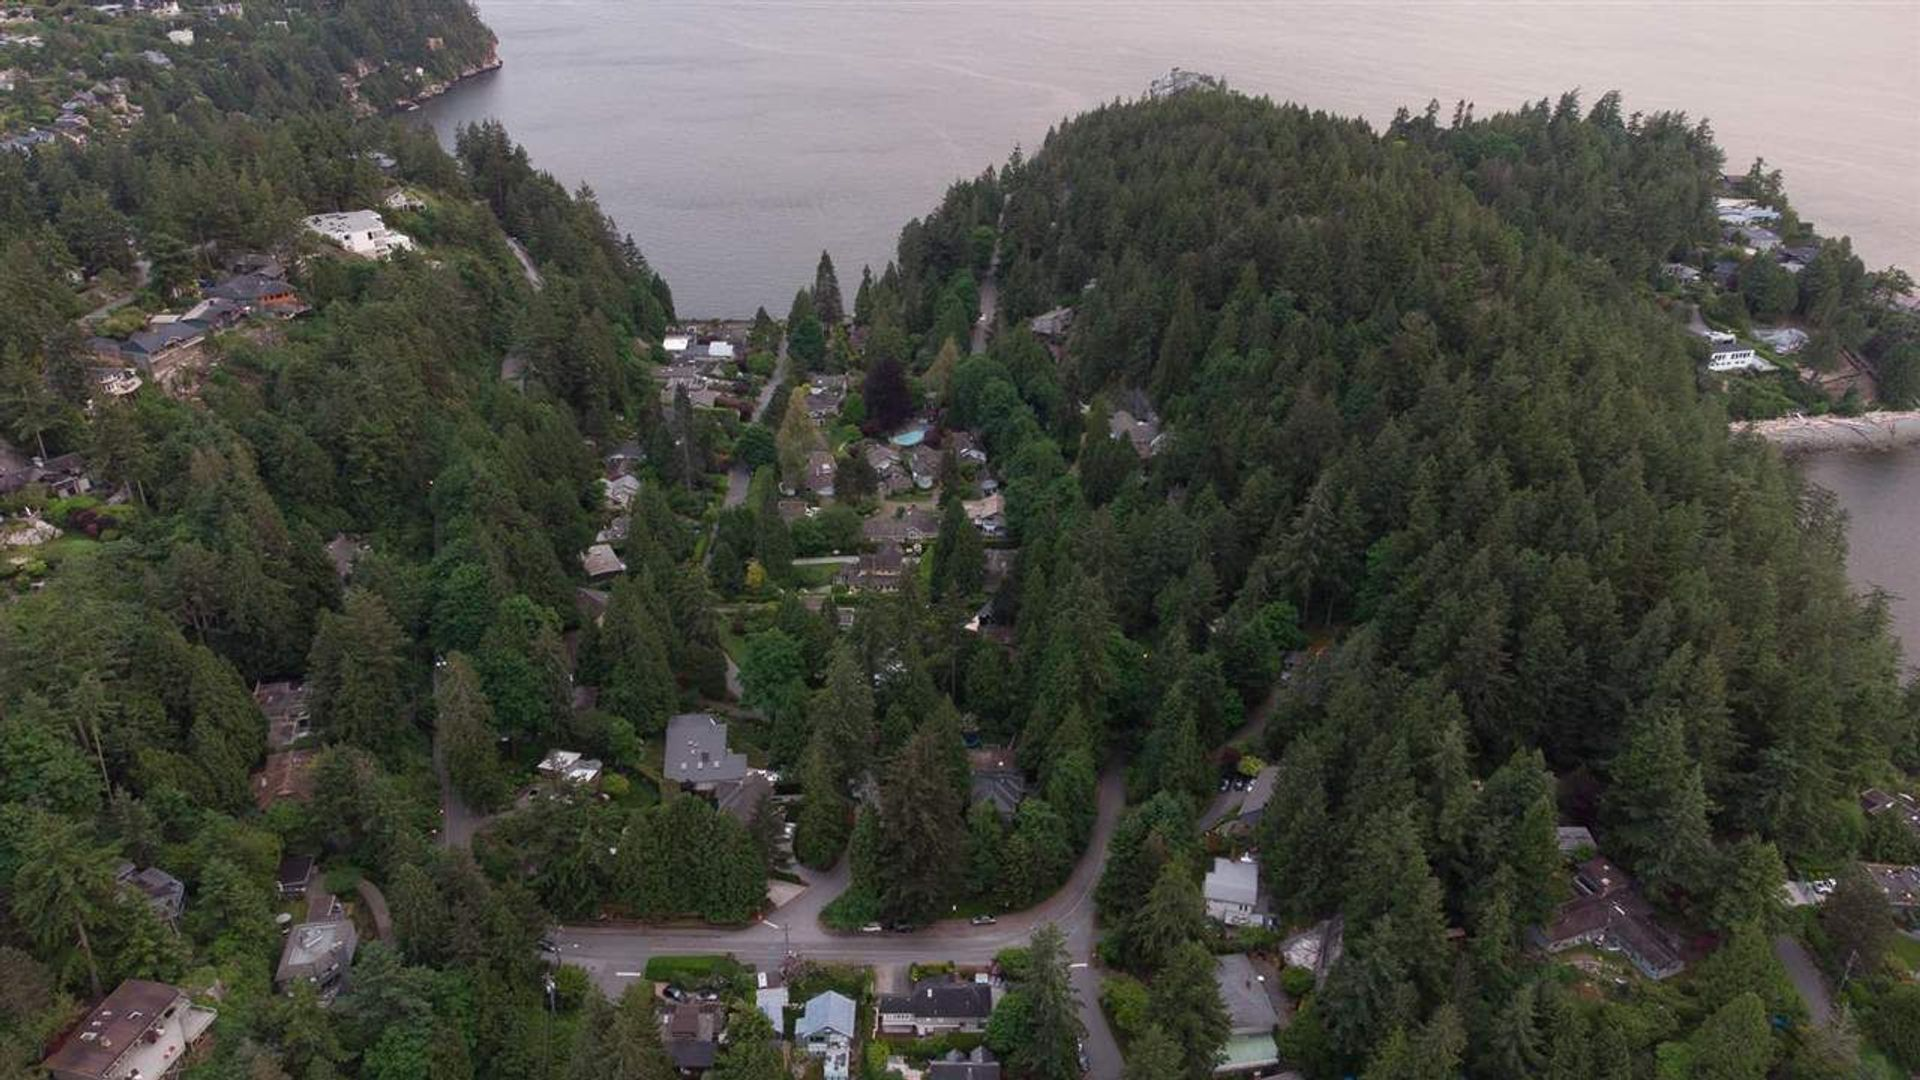 6875-marine-drive-whytecliff-west-vancouver-35 at 6875 Marine Drive, Whytecliff, West Vancouver